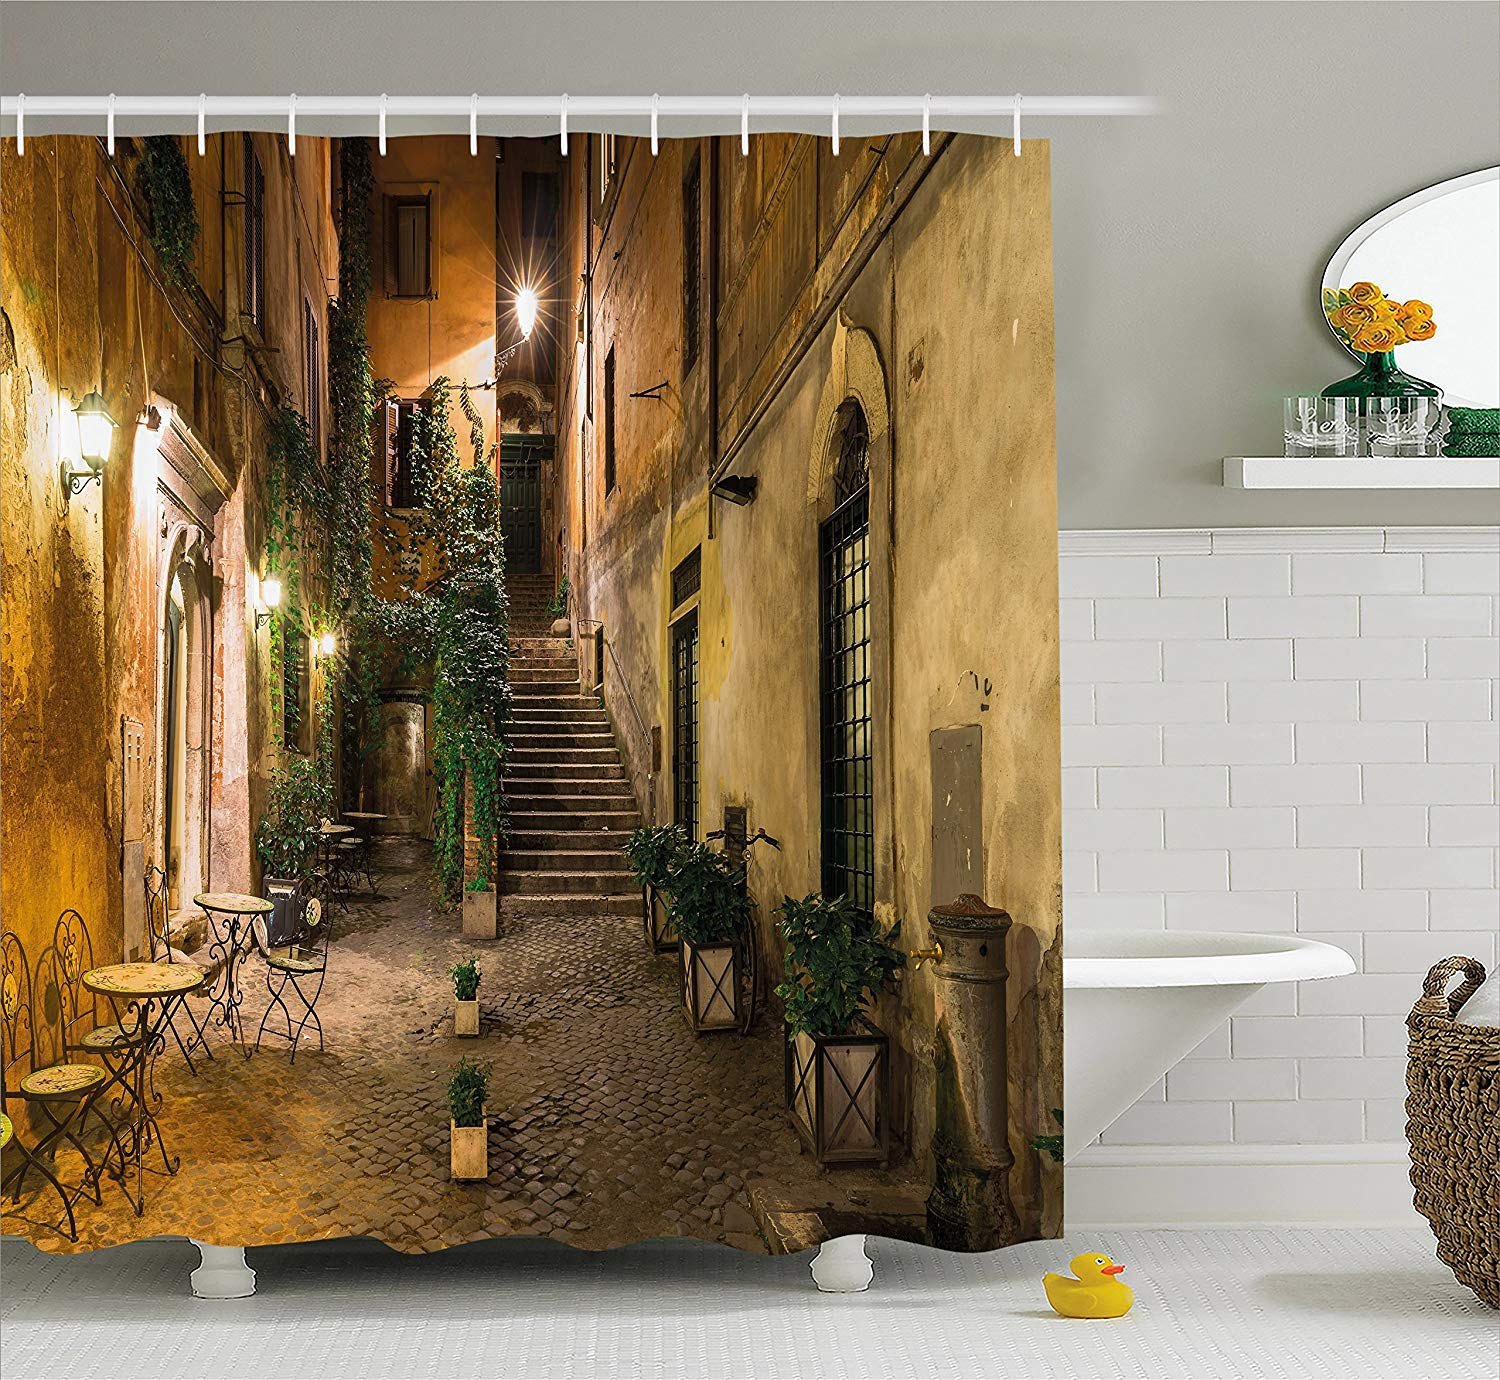 Italy Home Decor: Italian Decor Shower Curtain Old Courtyard In Rome Italy